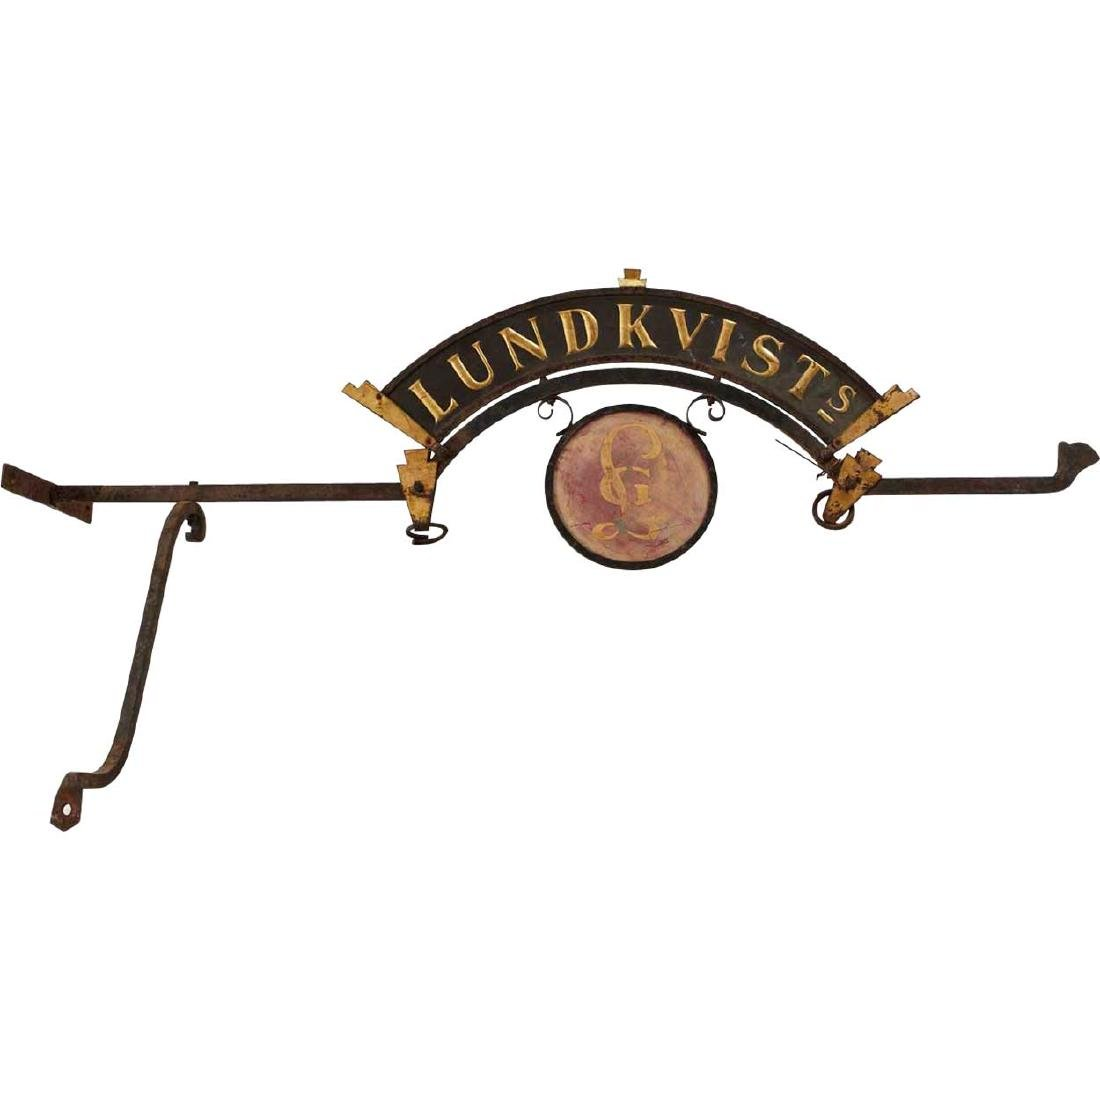 Danish Painted Metal Lundkvists Store Bracket Sign